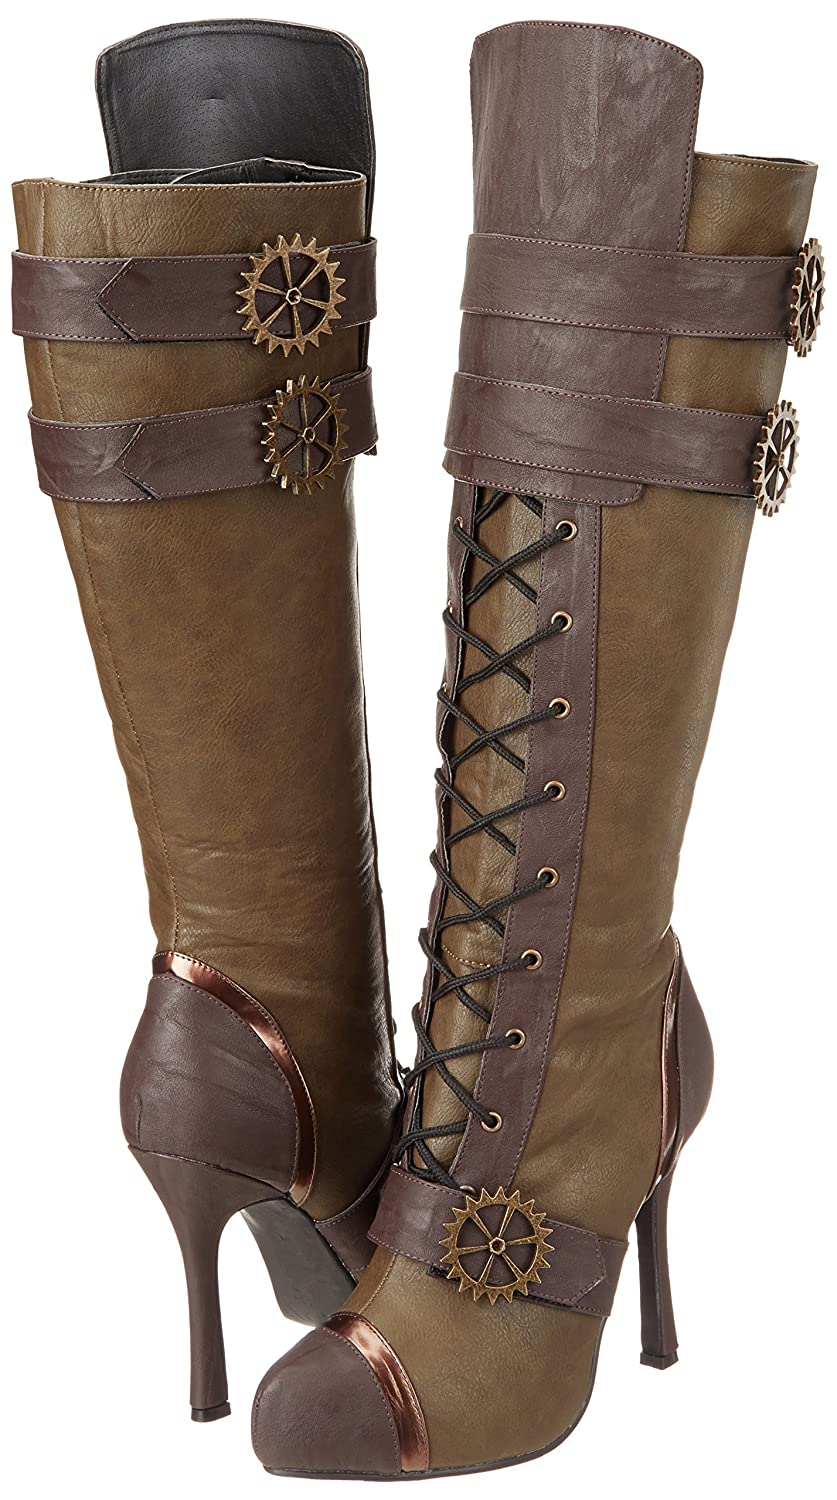 Ellie Shoes Womens 420 Quinley 4 Knee High Steampunk Boot with Laces Green 8 M US